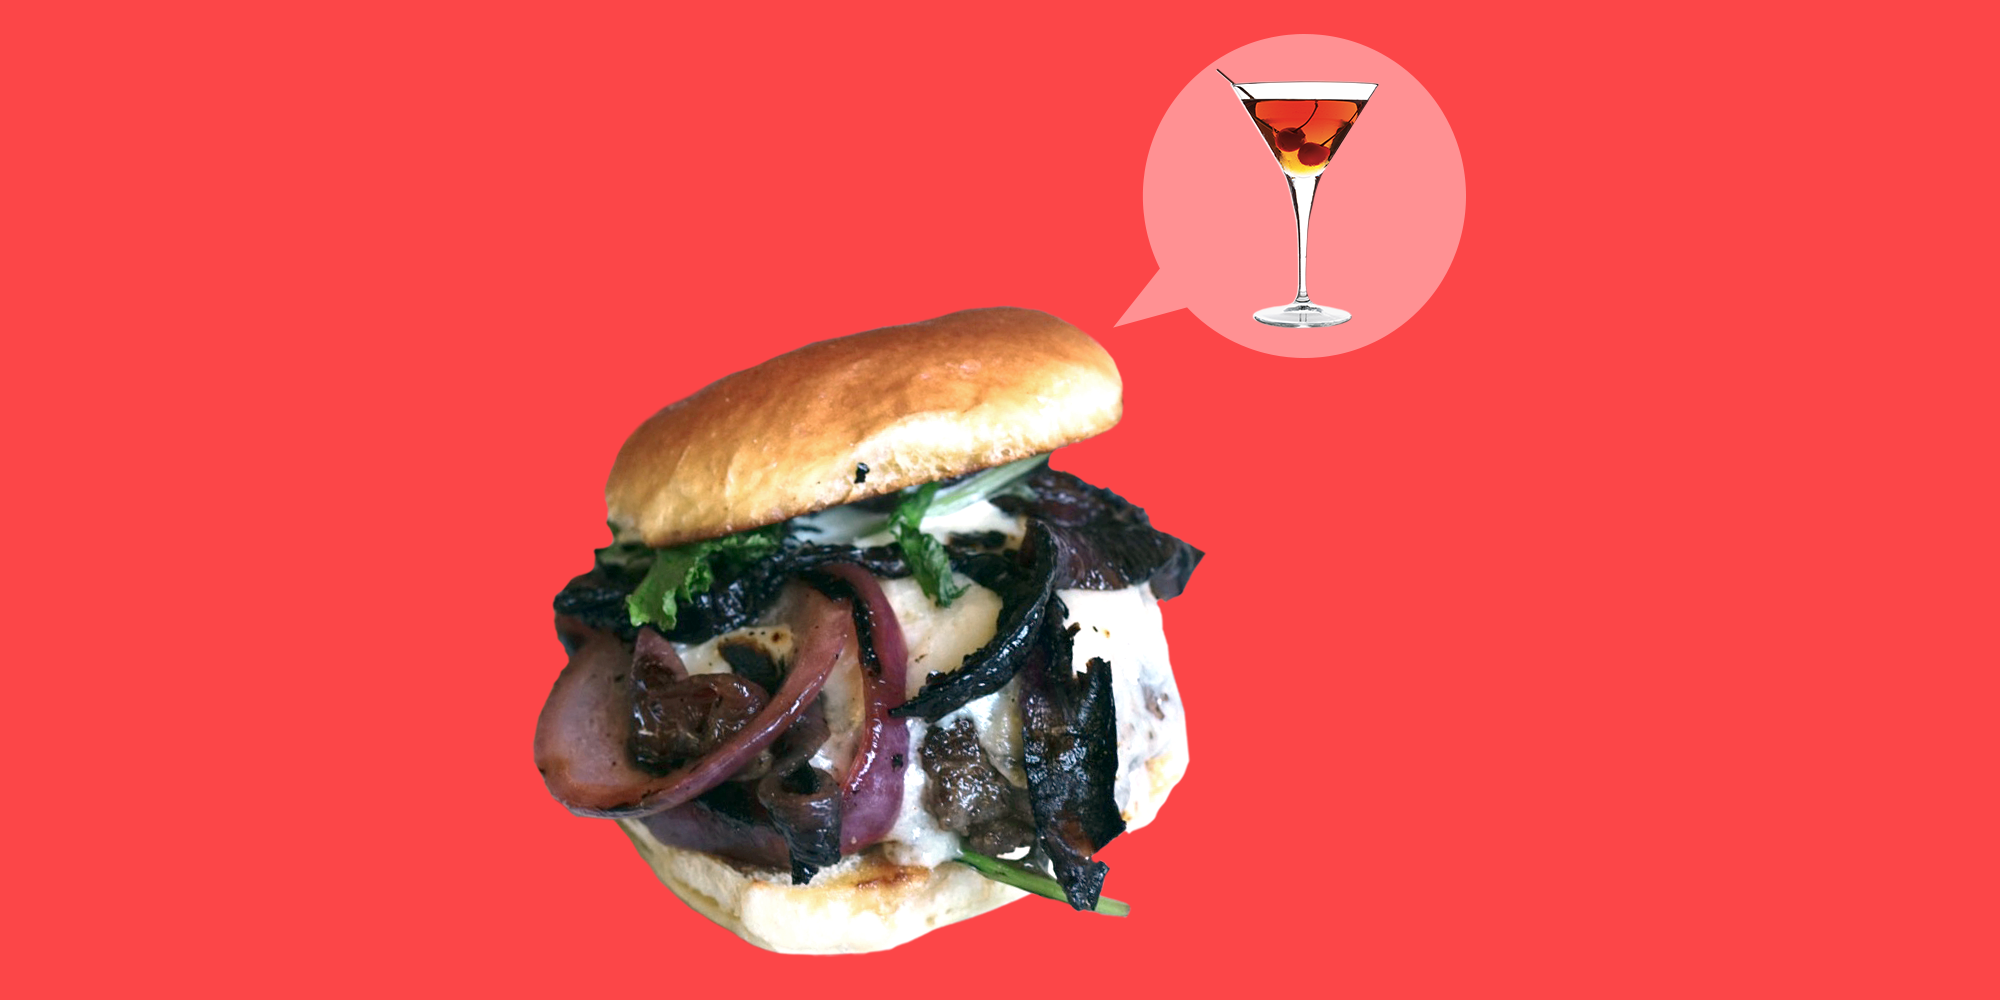 We Asked 8 Chefs to Turn Iconic Cocktails Into Burgers. It Worked.